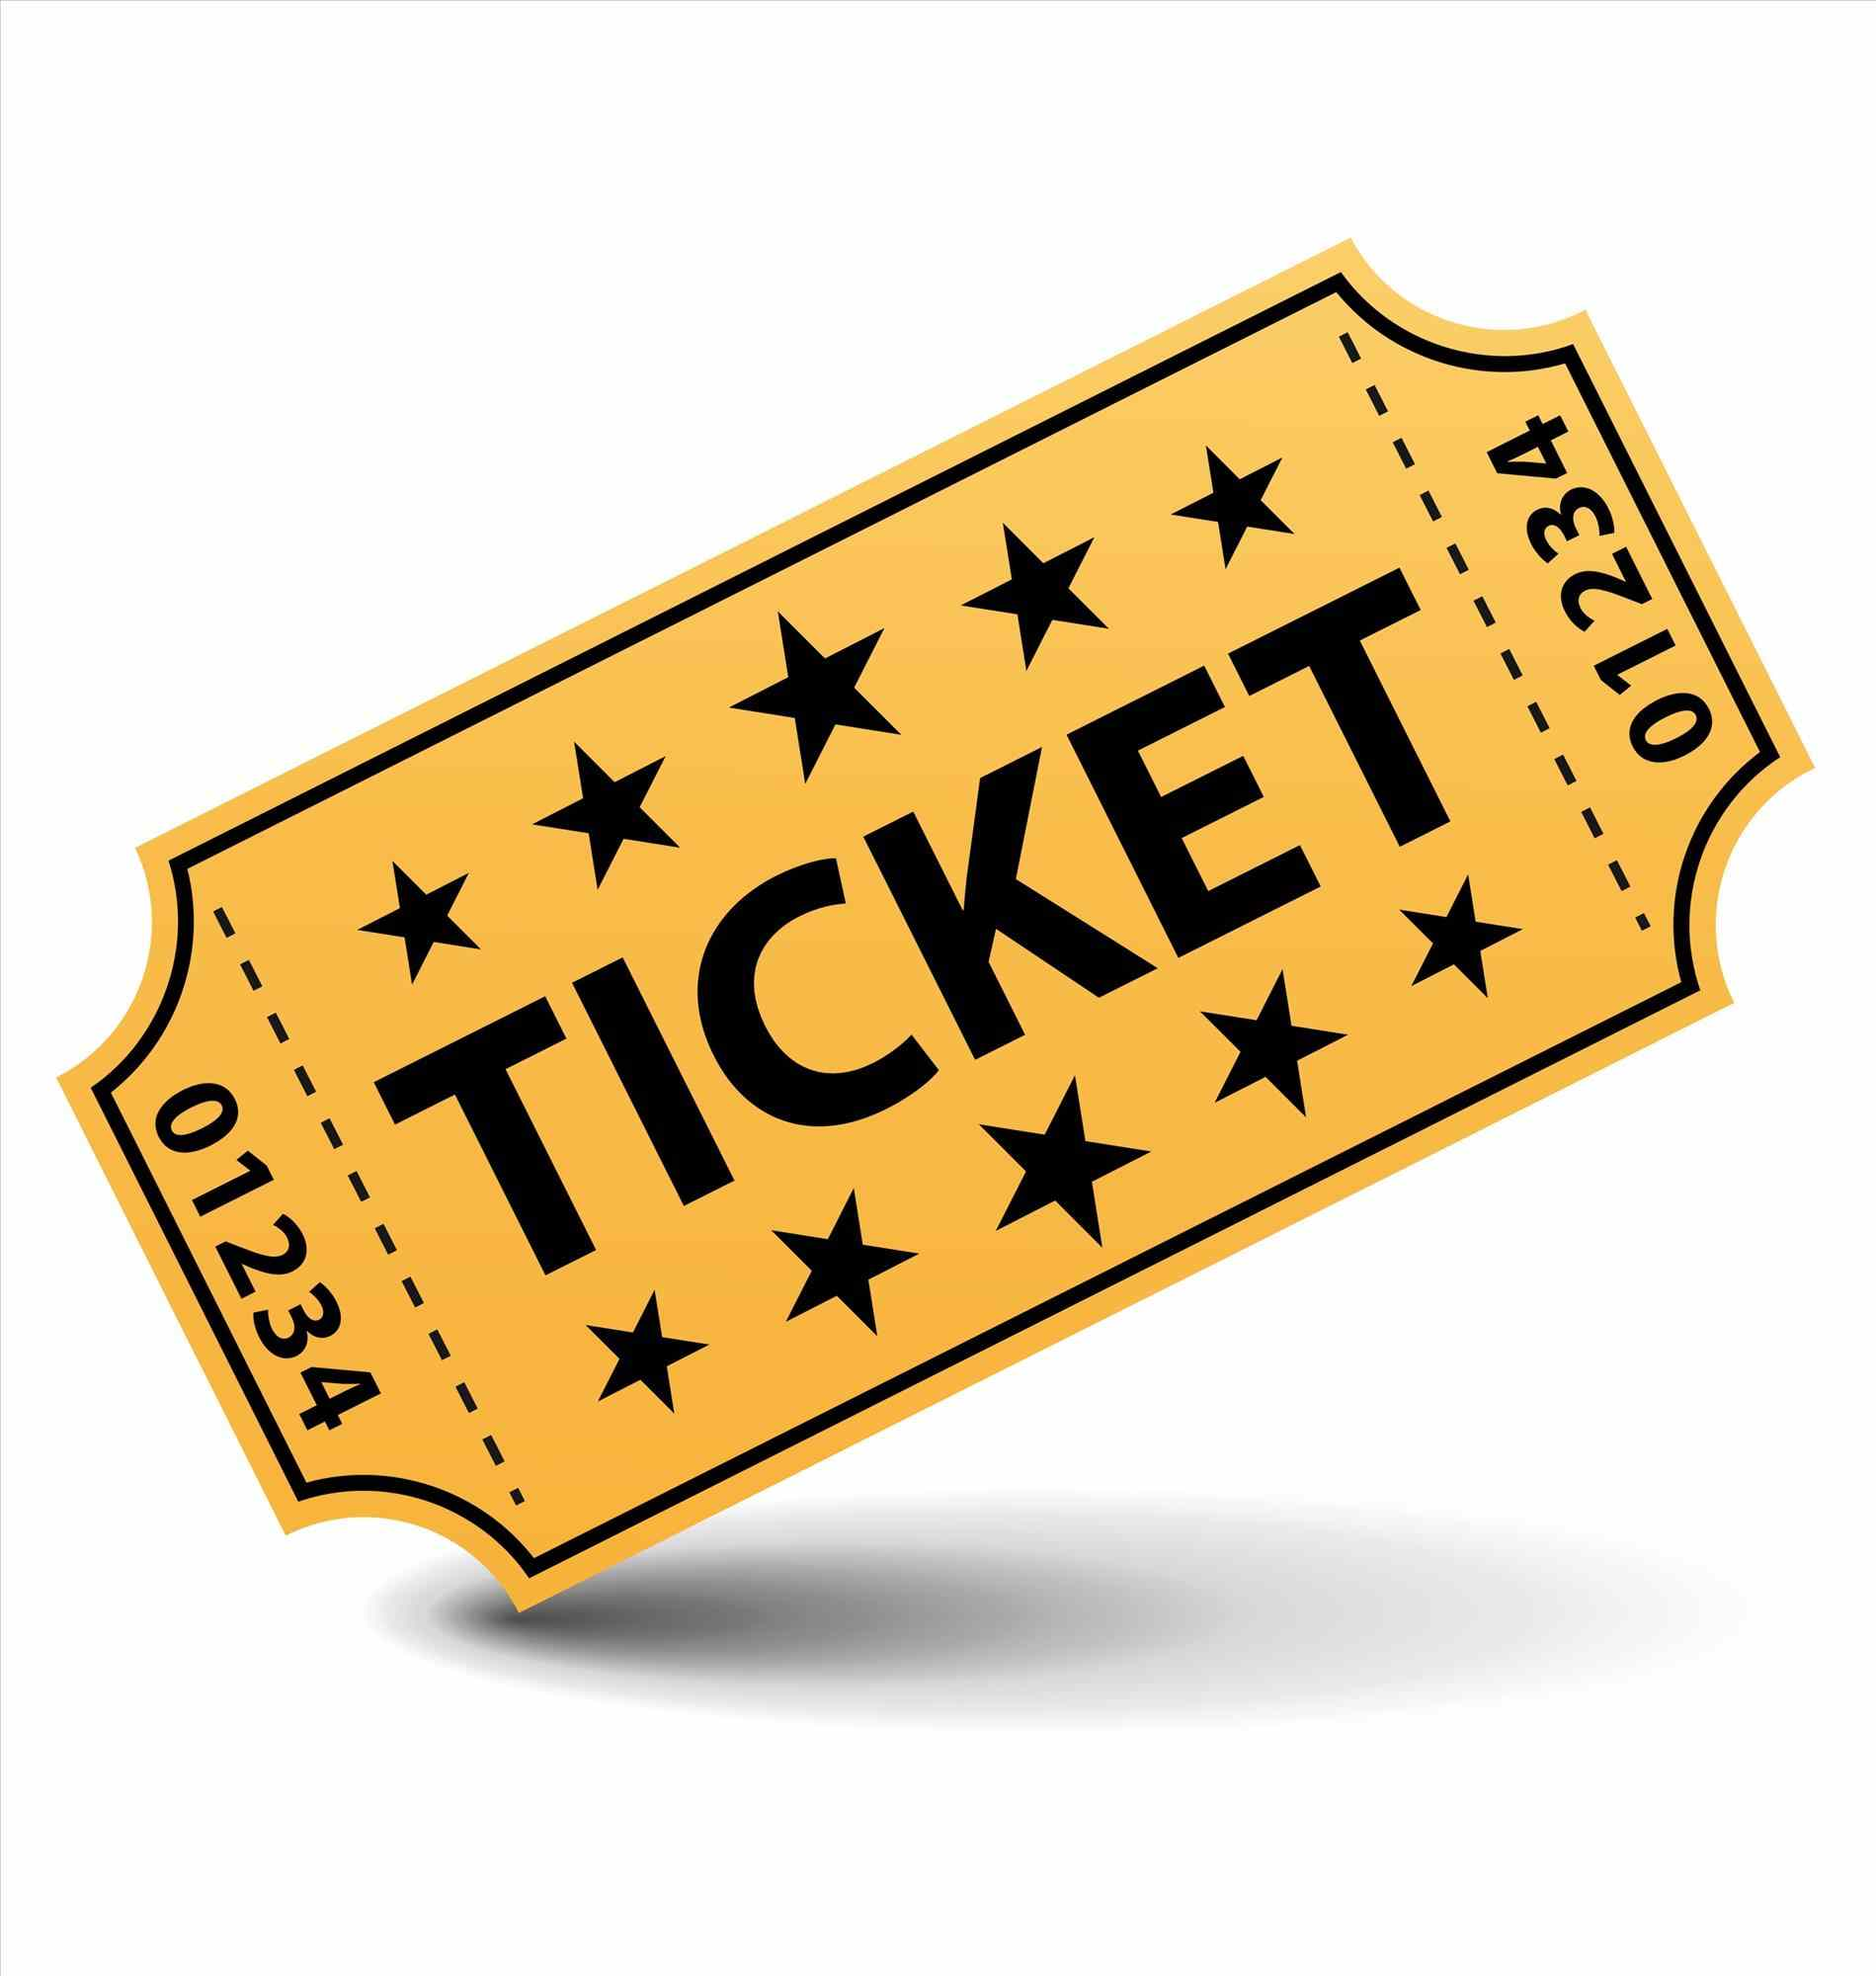 1899x2000 Movie Ticket Pictures Clip Art Movie Ticket Clipart Collection